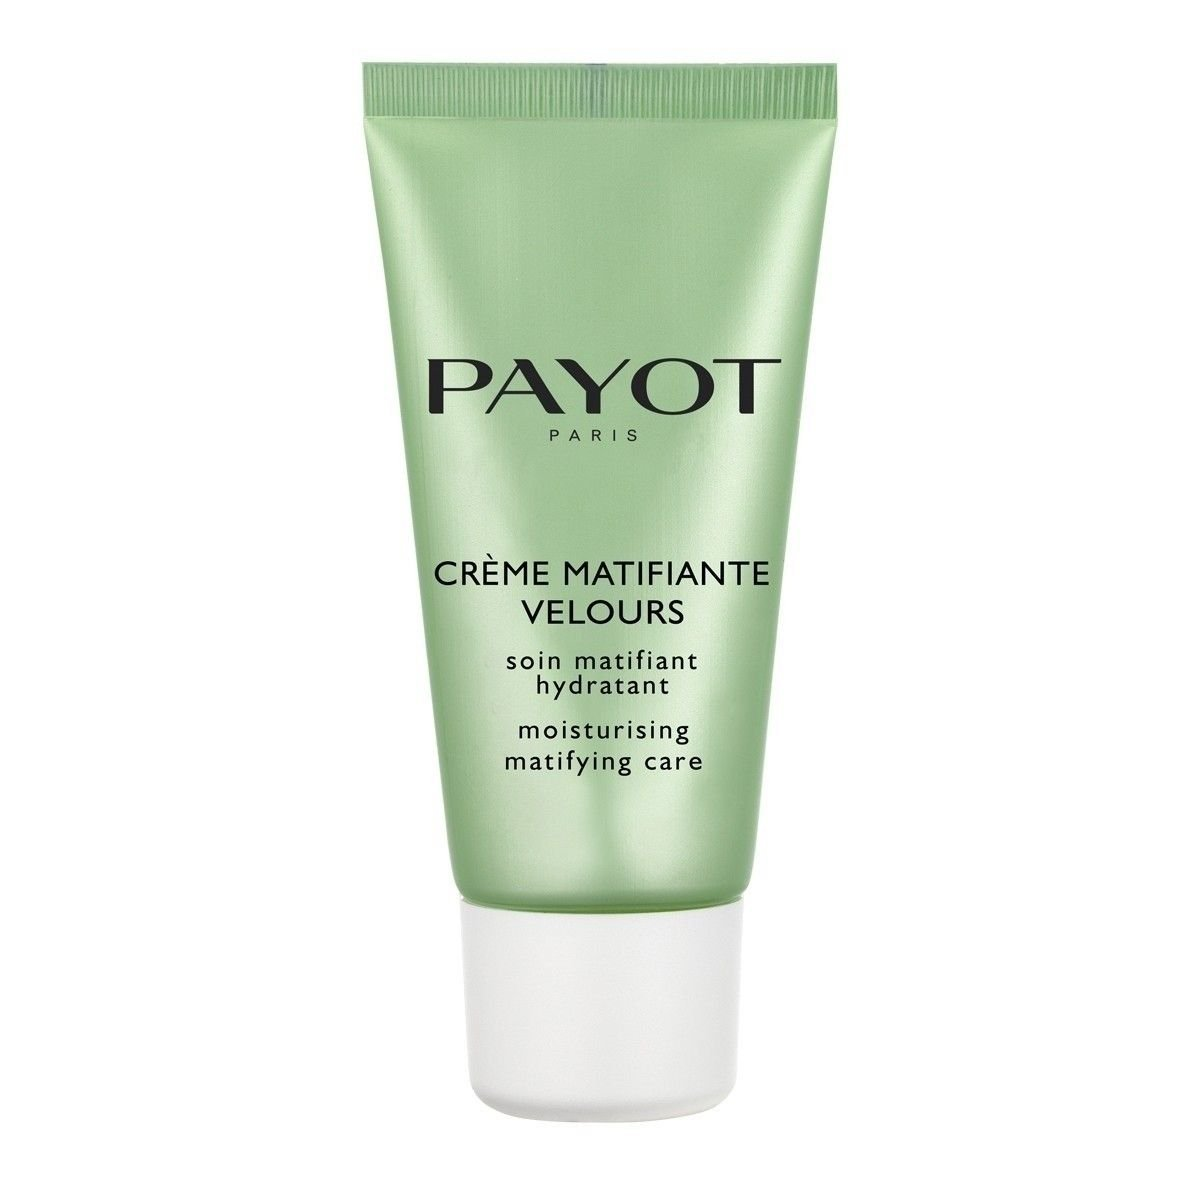 Payot Weekend Size Pate Grise Creme Matifiante 30 Ml